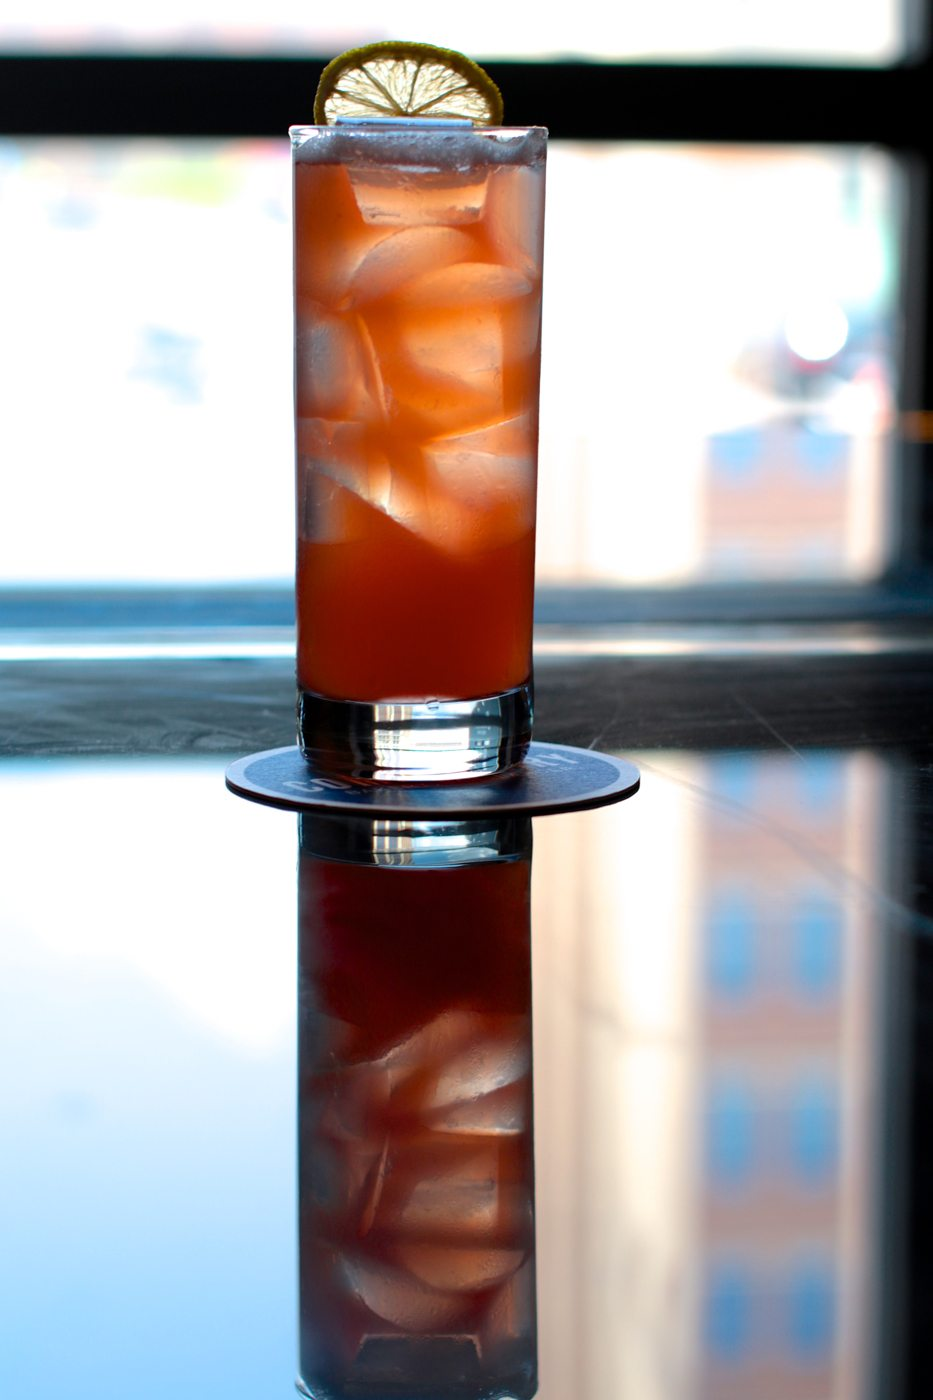 The Ginger Rogers mixes Lot No. 40 Canadian Whisky, rhubarb bitters and Crème de Fraise des Bois (a wild strawberry liqueur) with a dash of honey, some lemon and ginger beer. $15.